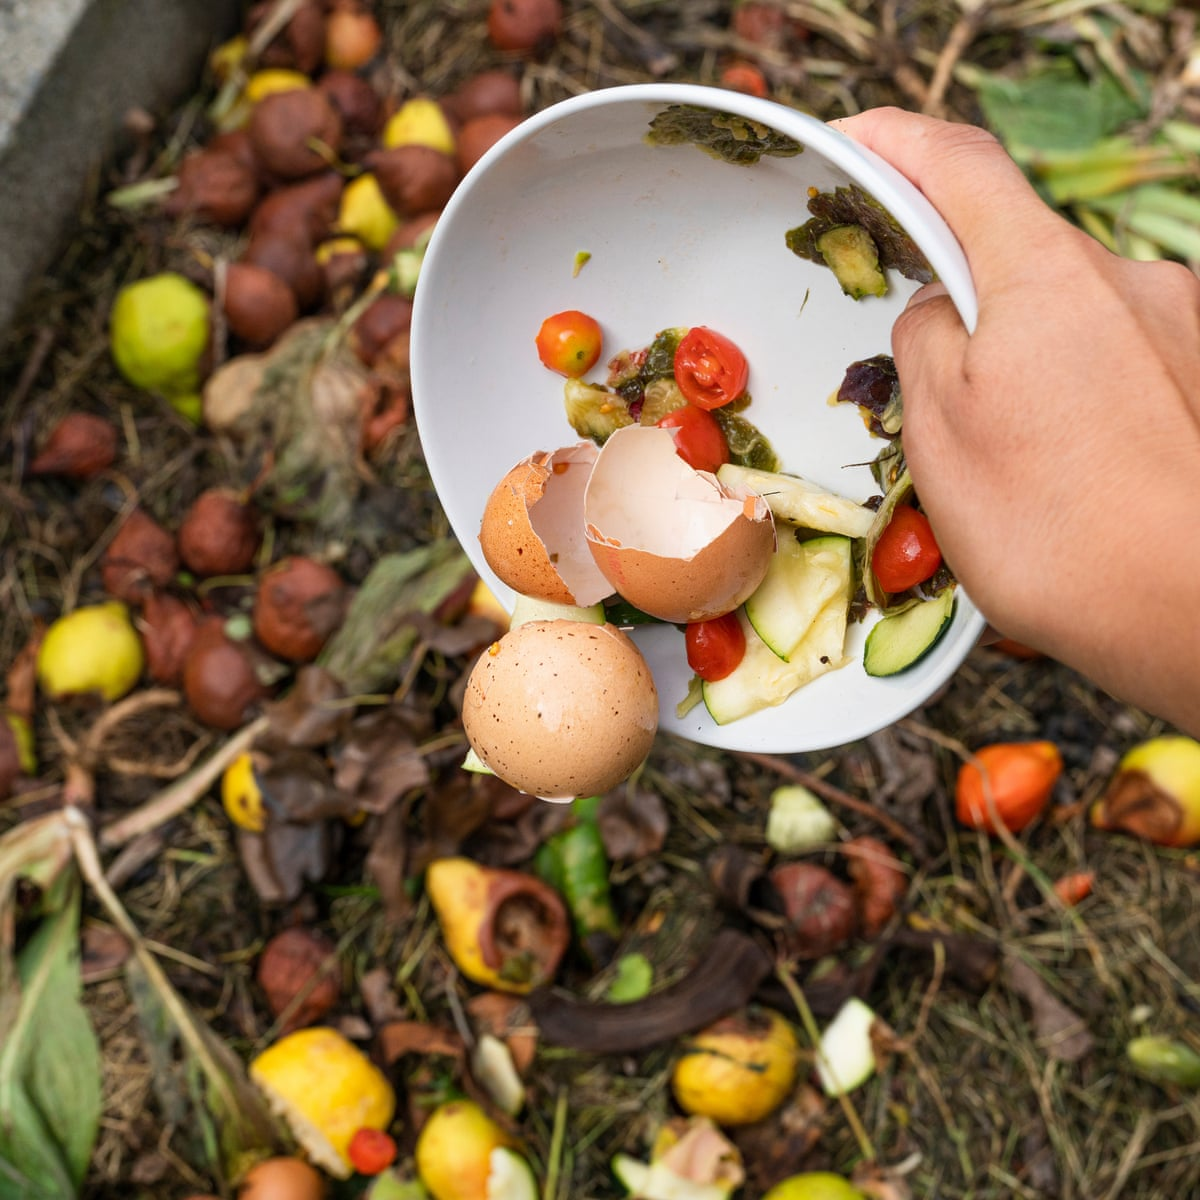 What's the best way to start composting? | Consumer affairs | The Guardian